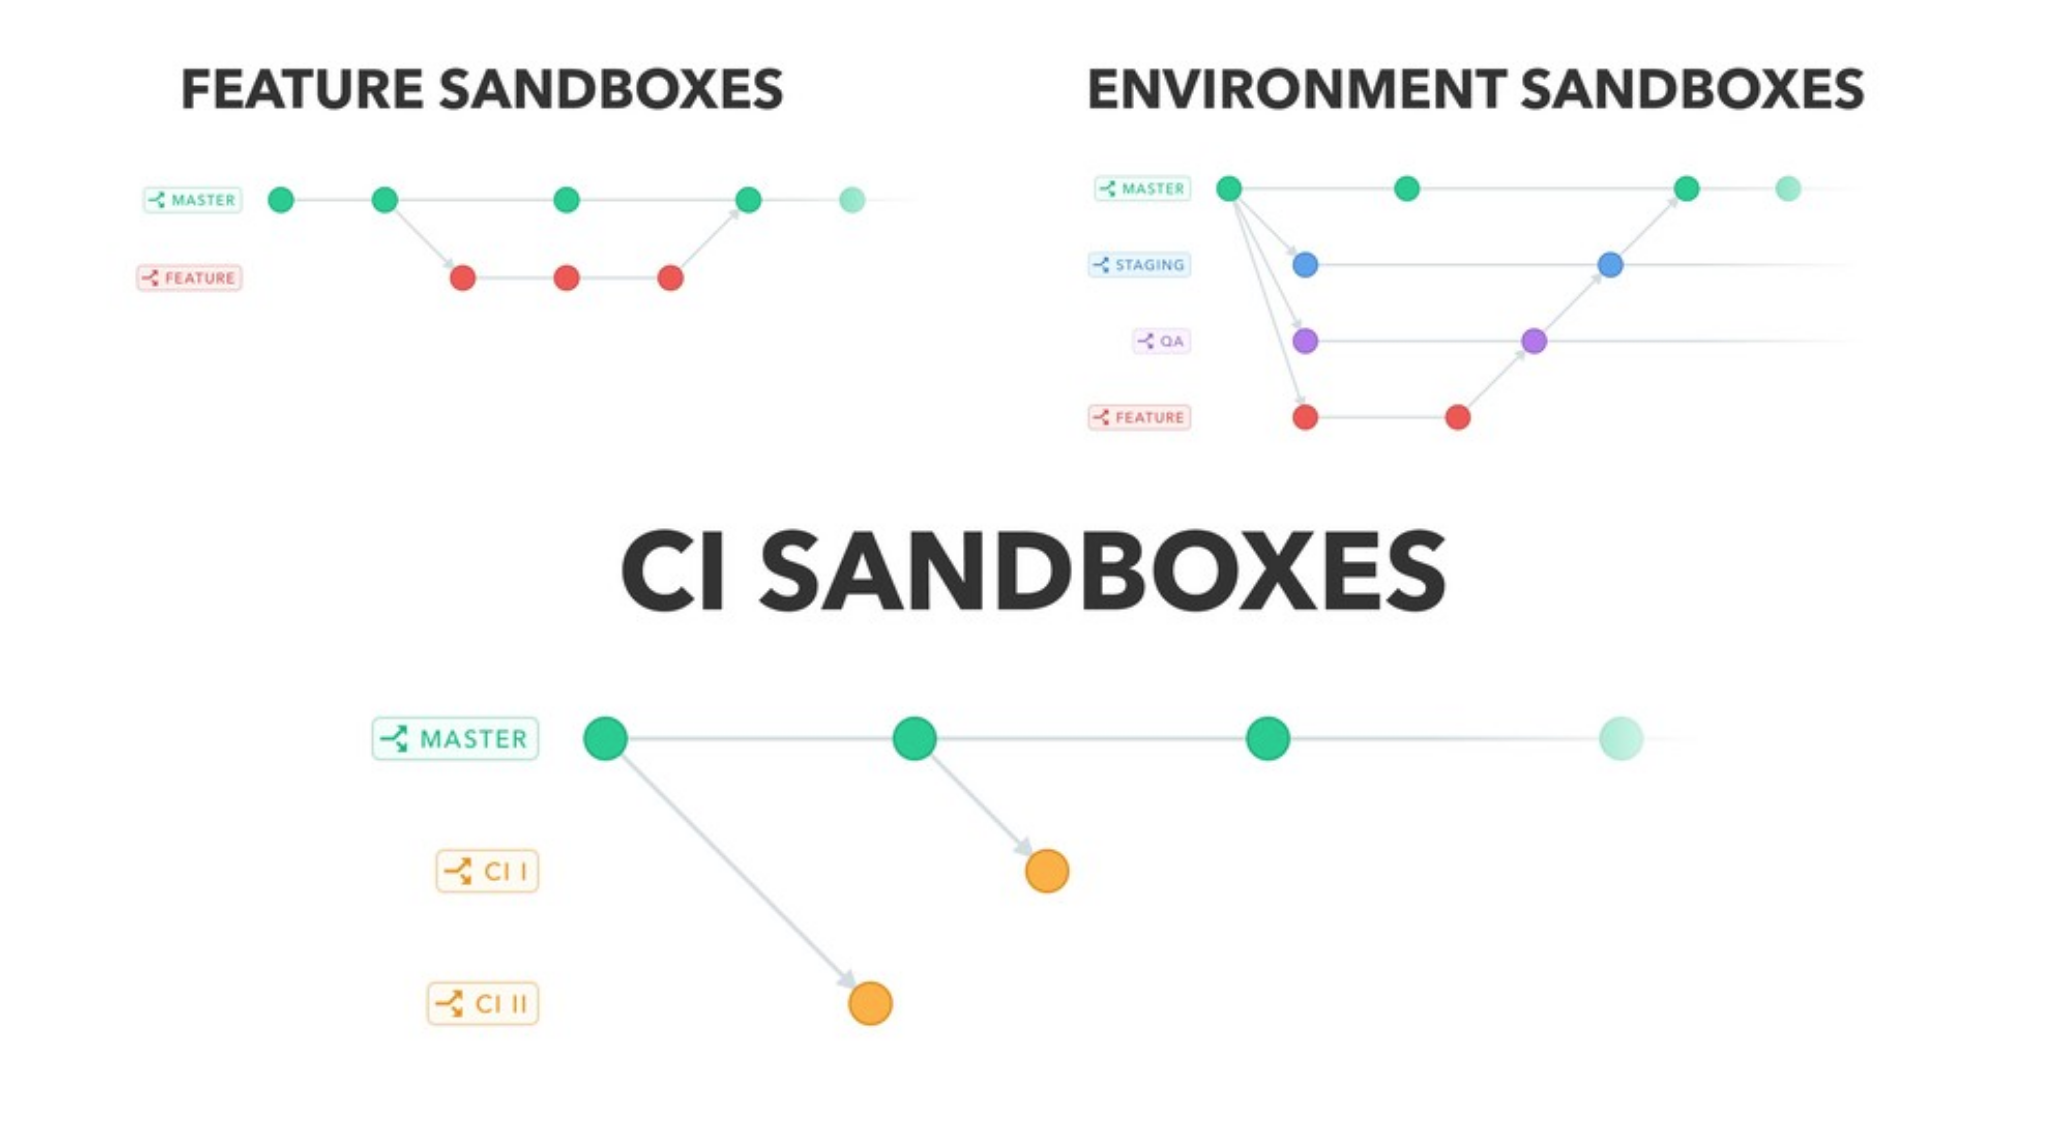 Combination of environment sandboxes lets you work more effectively